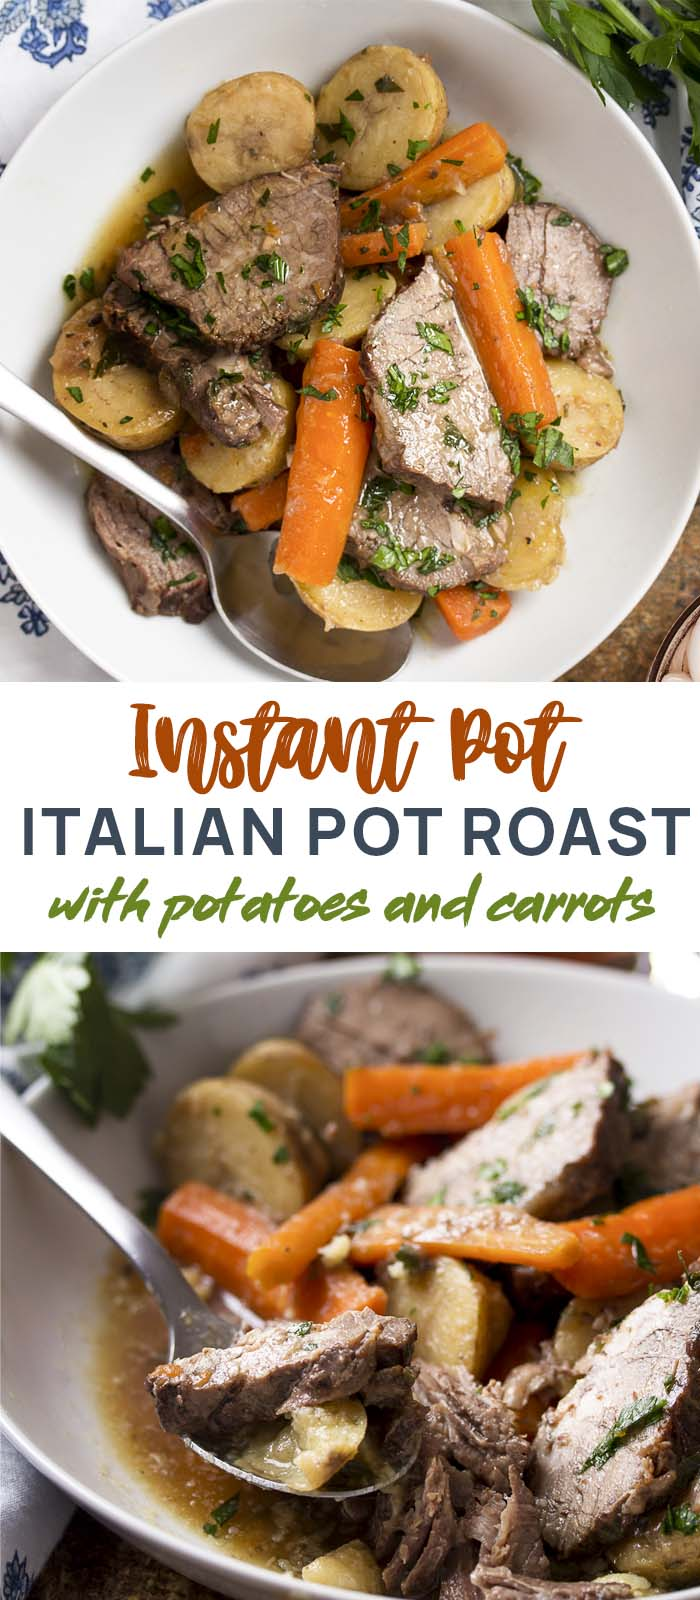 My Italian-style pressure cooker pot roast is braised in red wine until the meat just falls apart and the potatoes and carrots are tender. Easy instant pot comfort food dinner! | justalittlebitofbacon.com #italianrecipes #dinnerrecipes #comfortfood #pressurecooker #instantpot #potroast